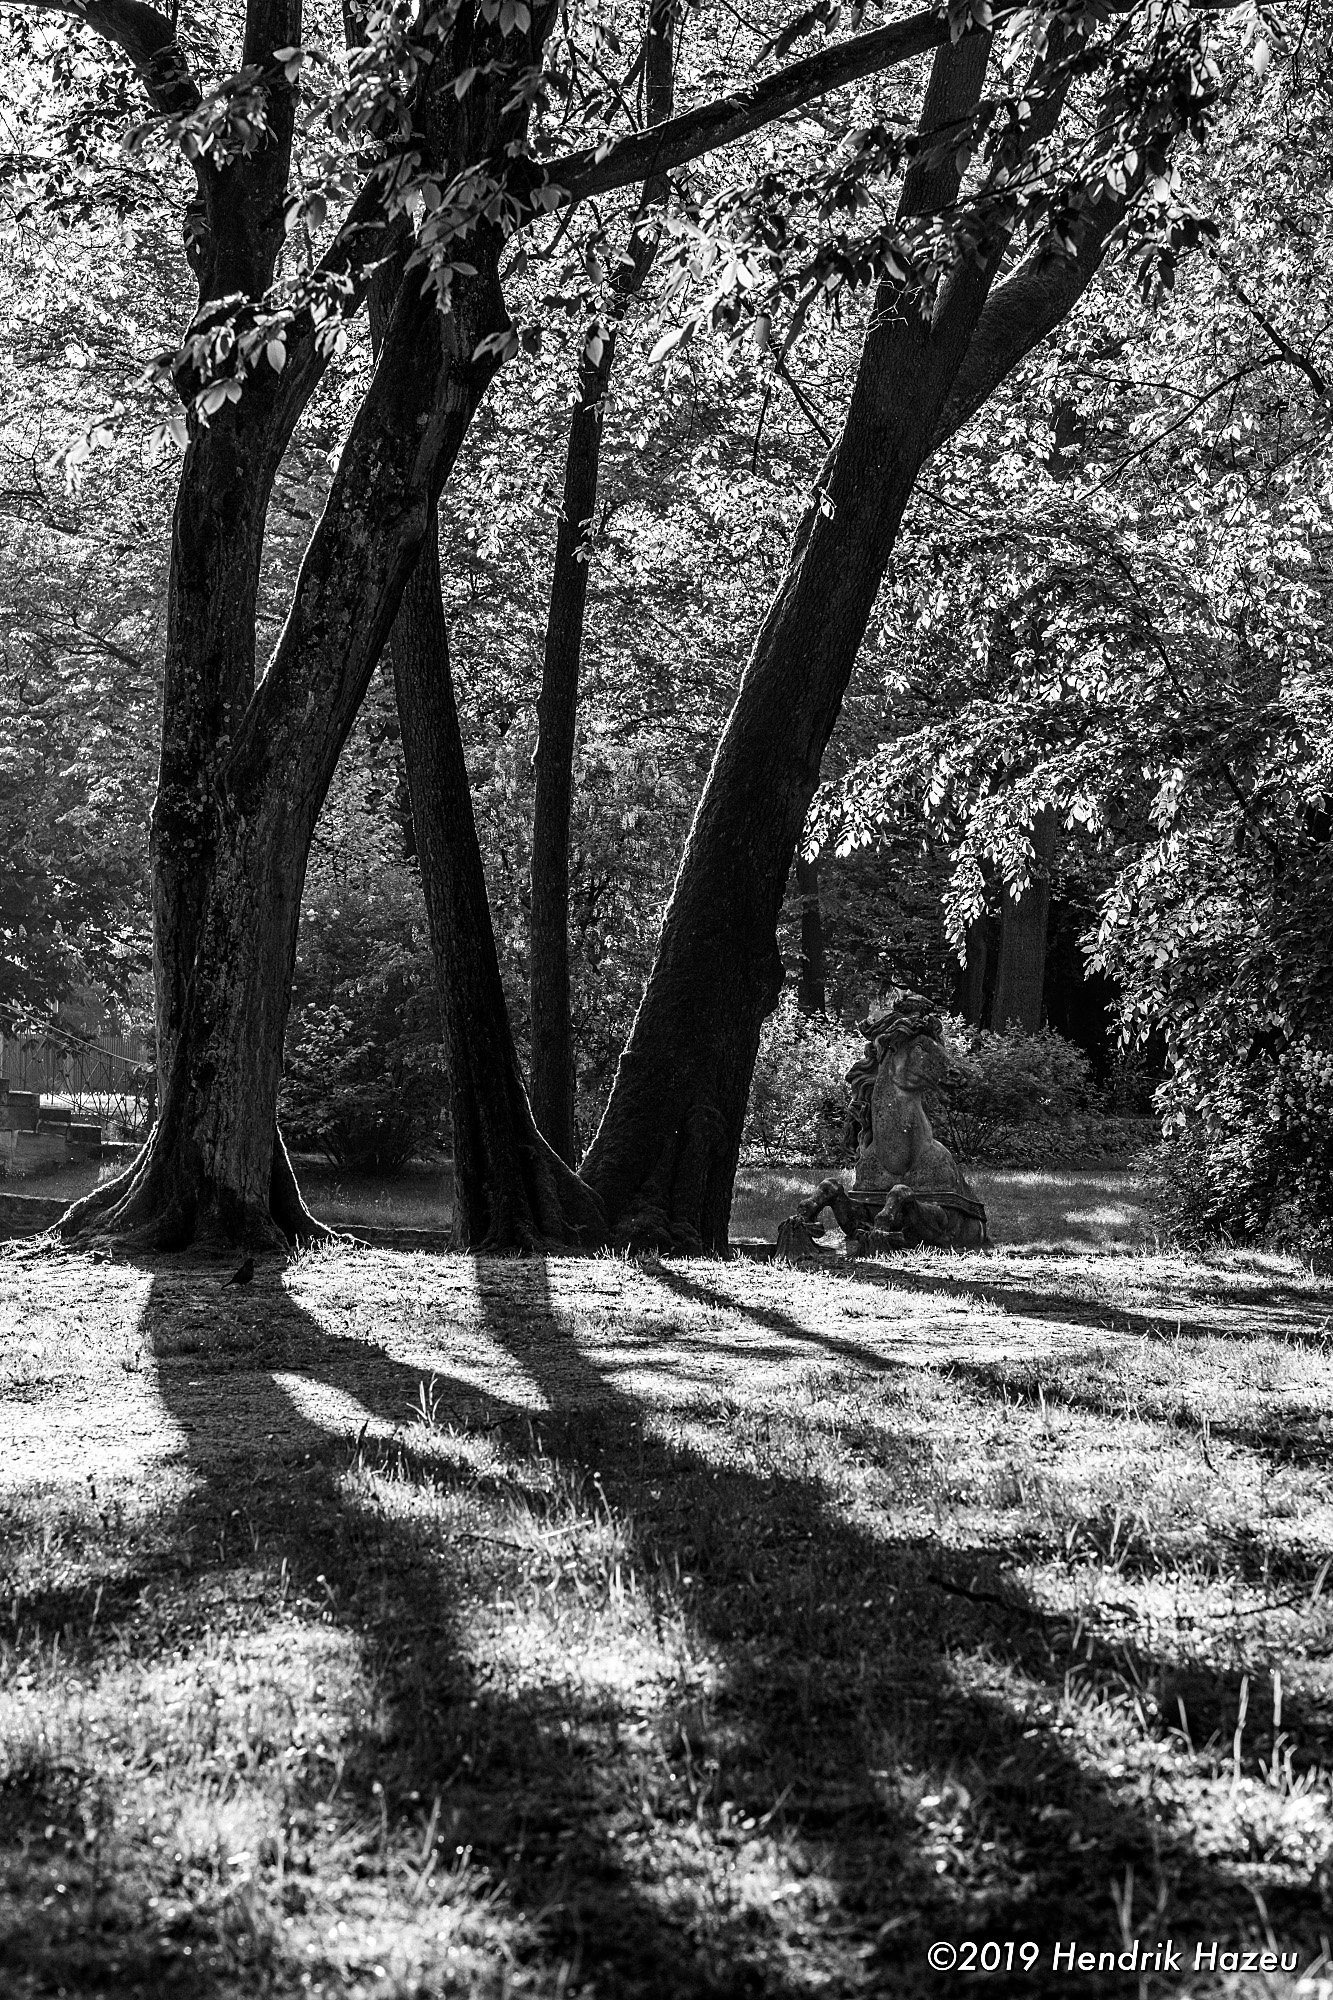 Contre-jour image of trees in Bayreuth's Hof Garden, captured on XF 56mm F/1.2 R @F/5.6, 1/140 sec, 400 ISO